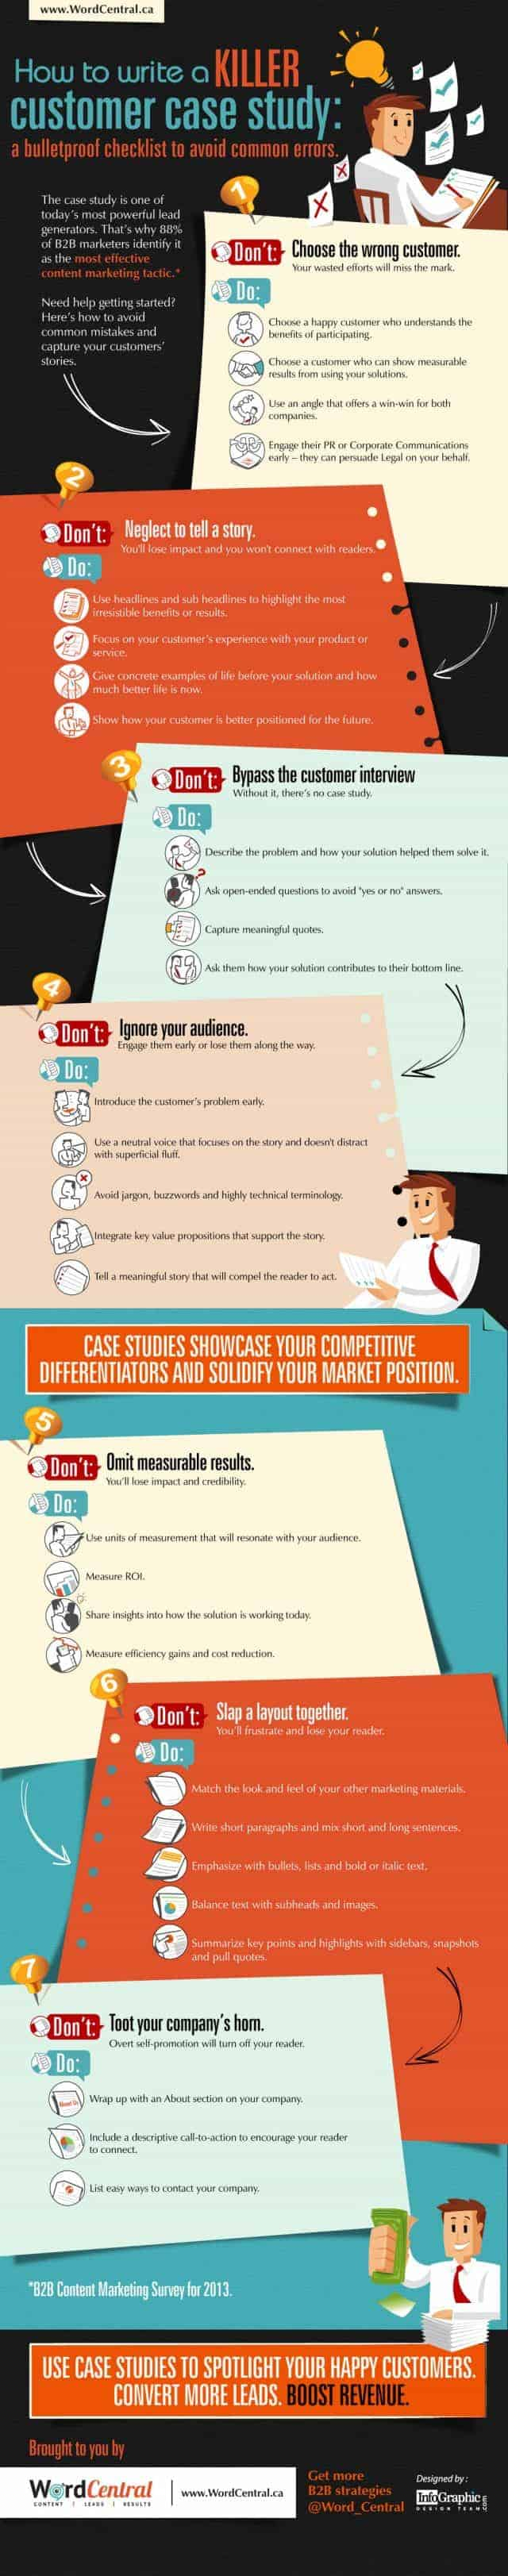 How To Write A Killer Customer Case Study